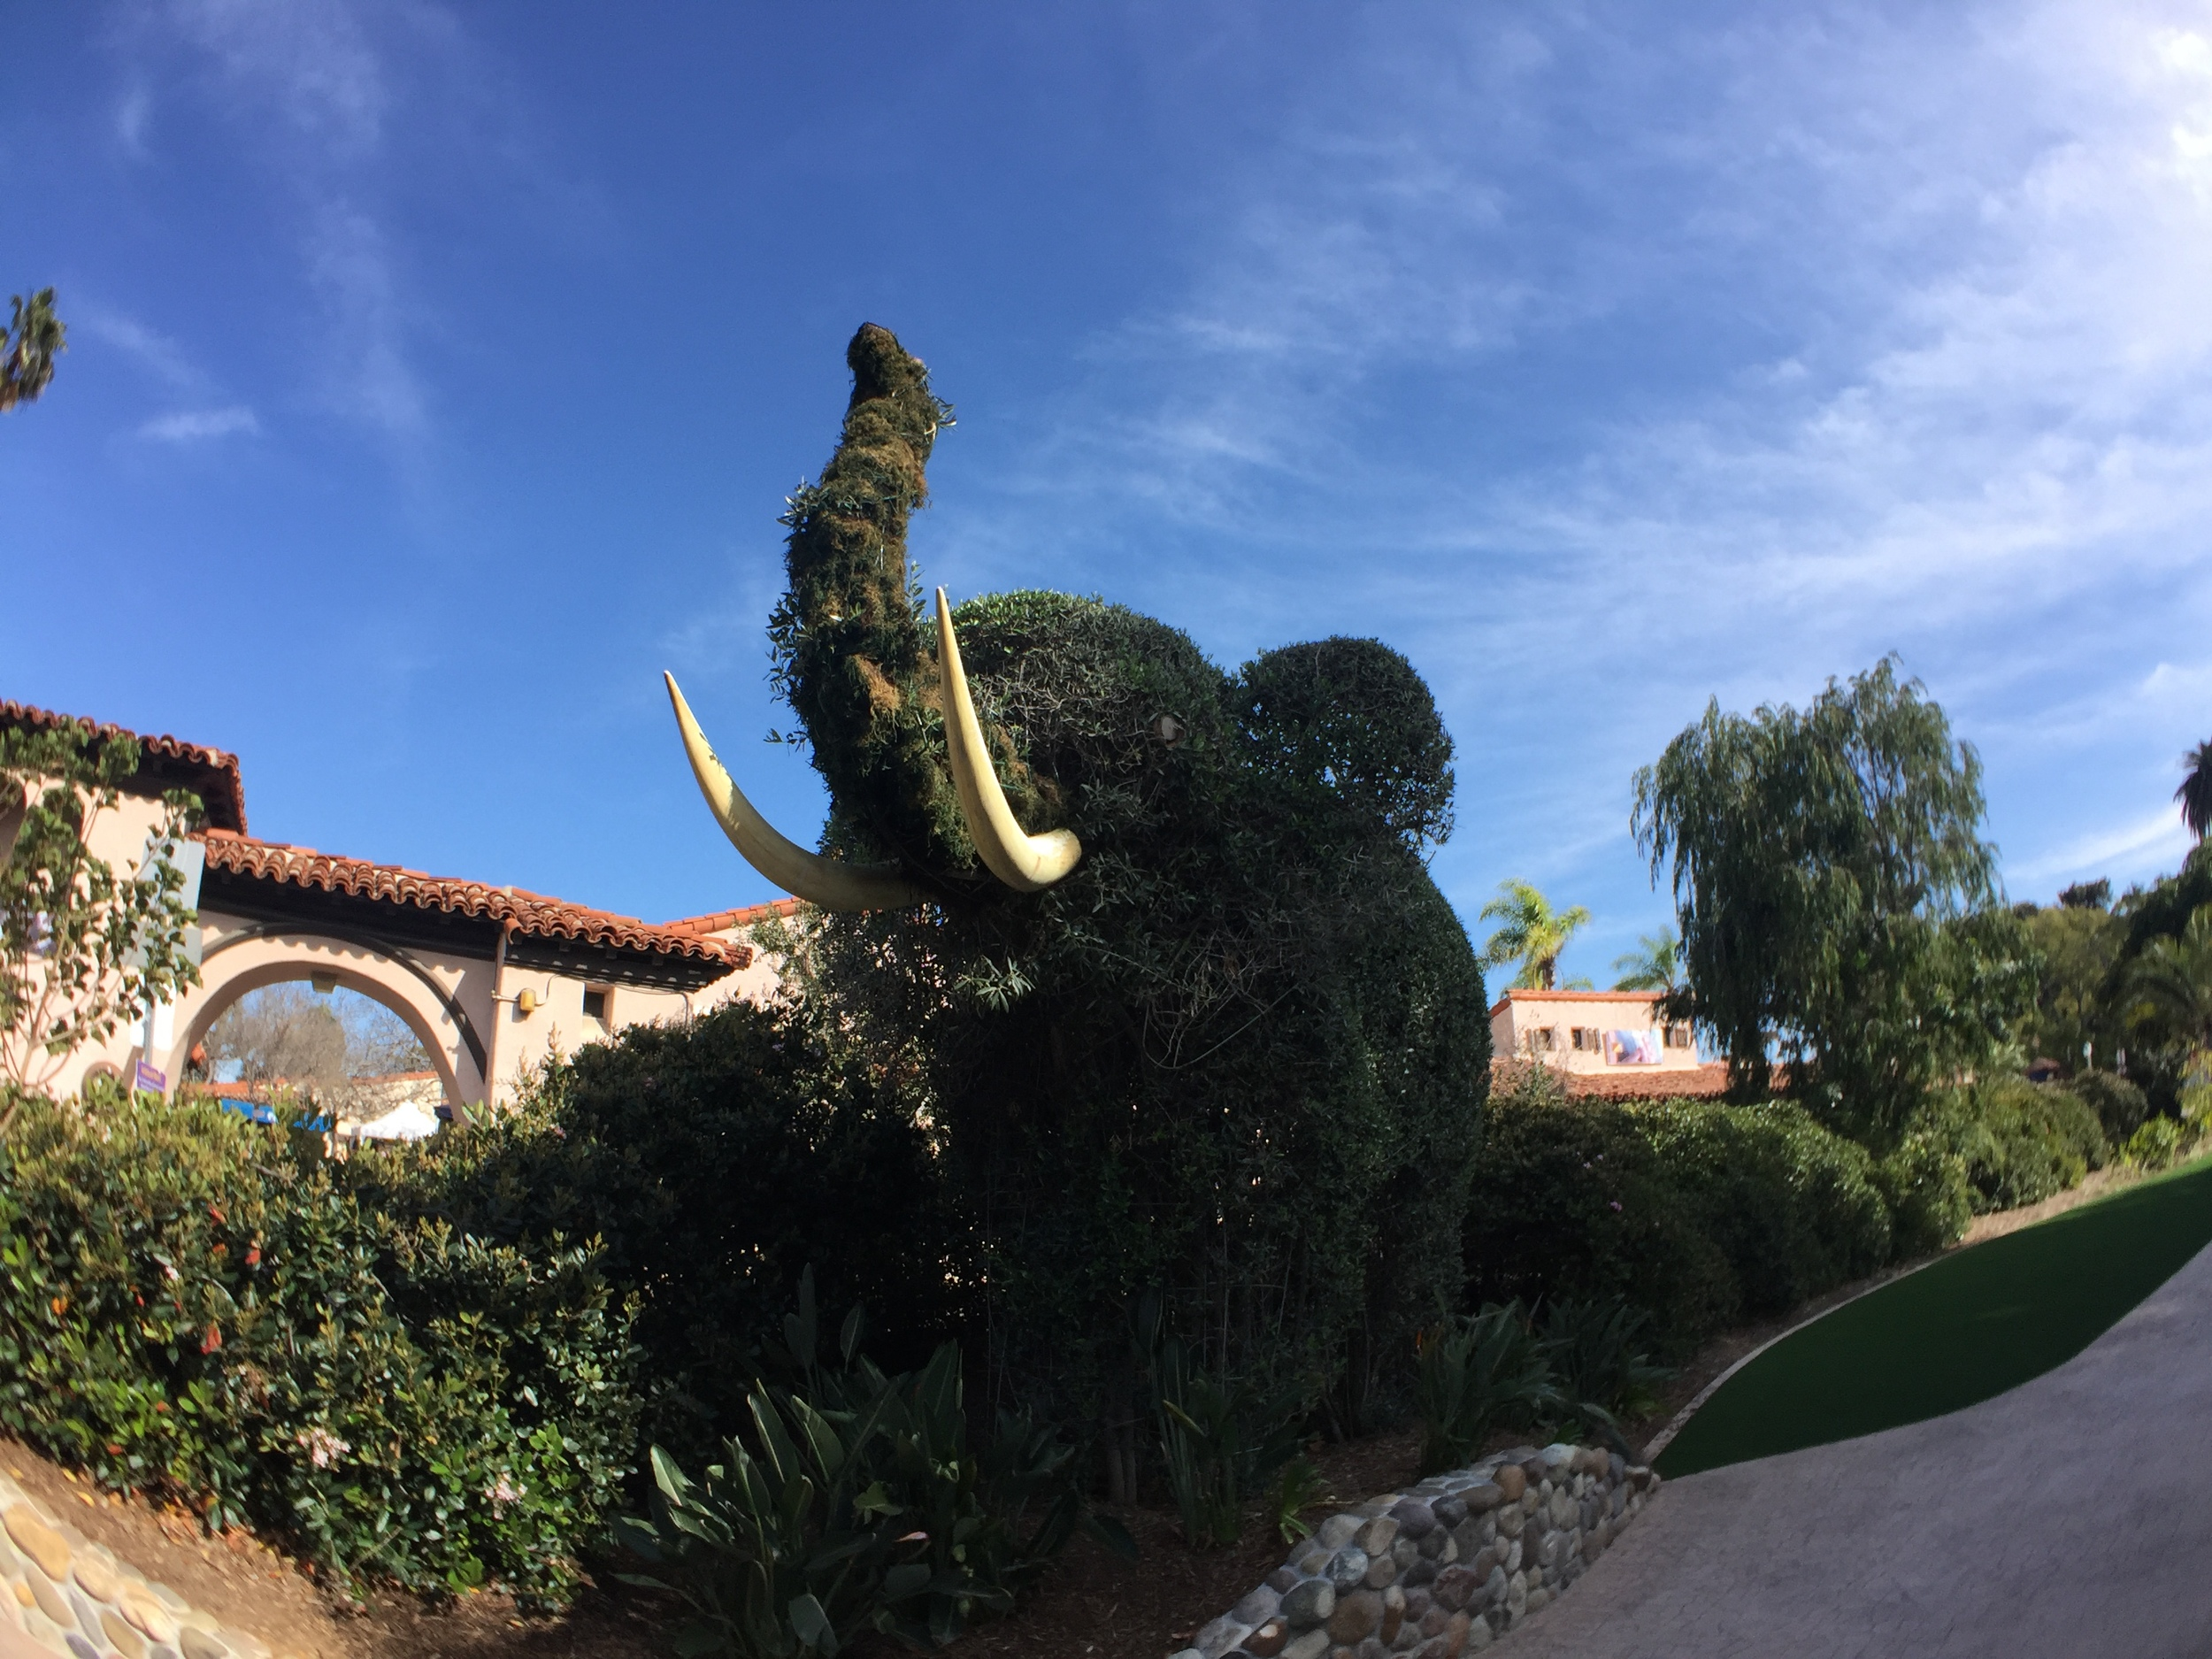 Then, we spent an afternoon documenting the beauty of Balboa Park—home to the  San Diego Zoo , a botanical gardens, and several museums.